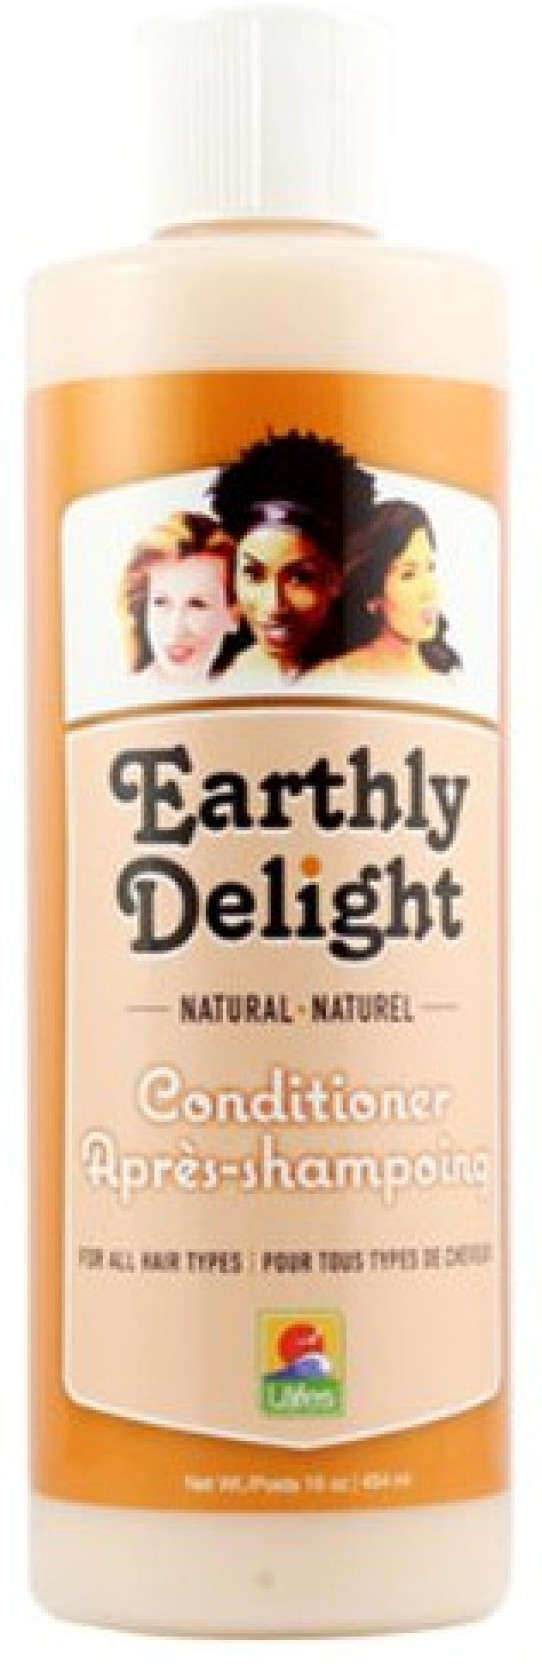 earthly delights hair products